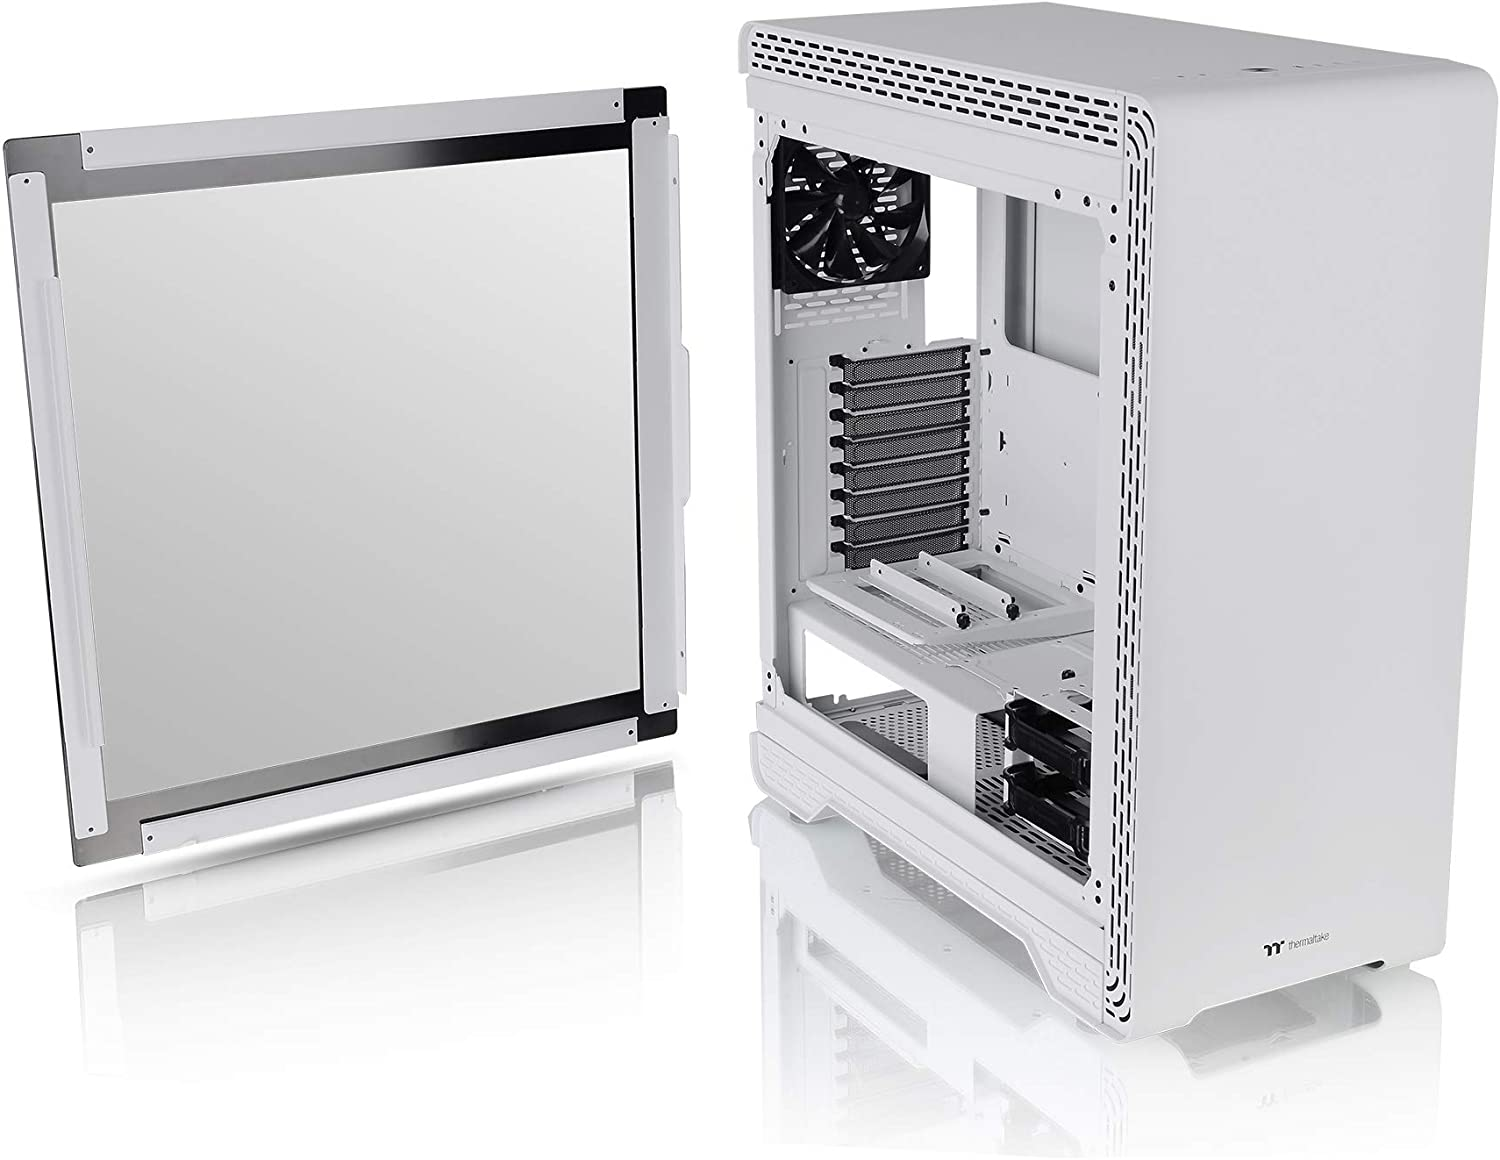 Thermaltake S500 Tempered Glass Snow Edition Mid-Tower Chassis/PC Case: Amazon.es: Informática